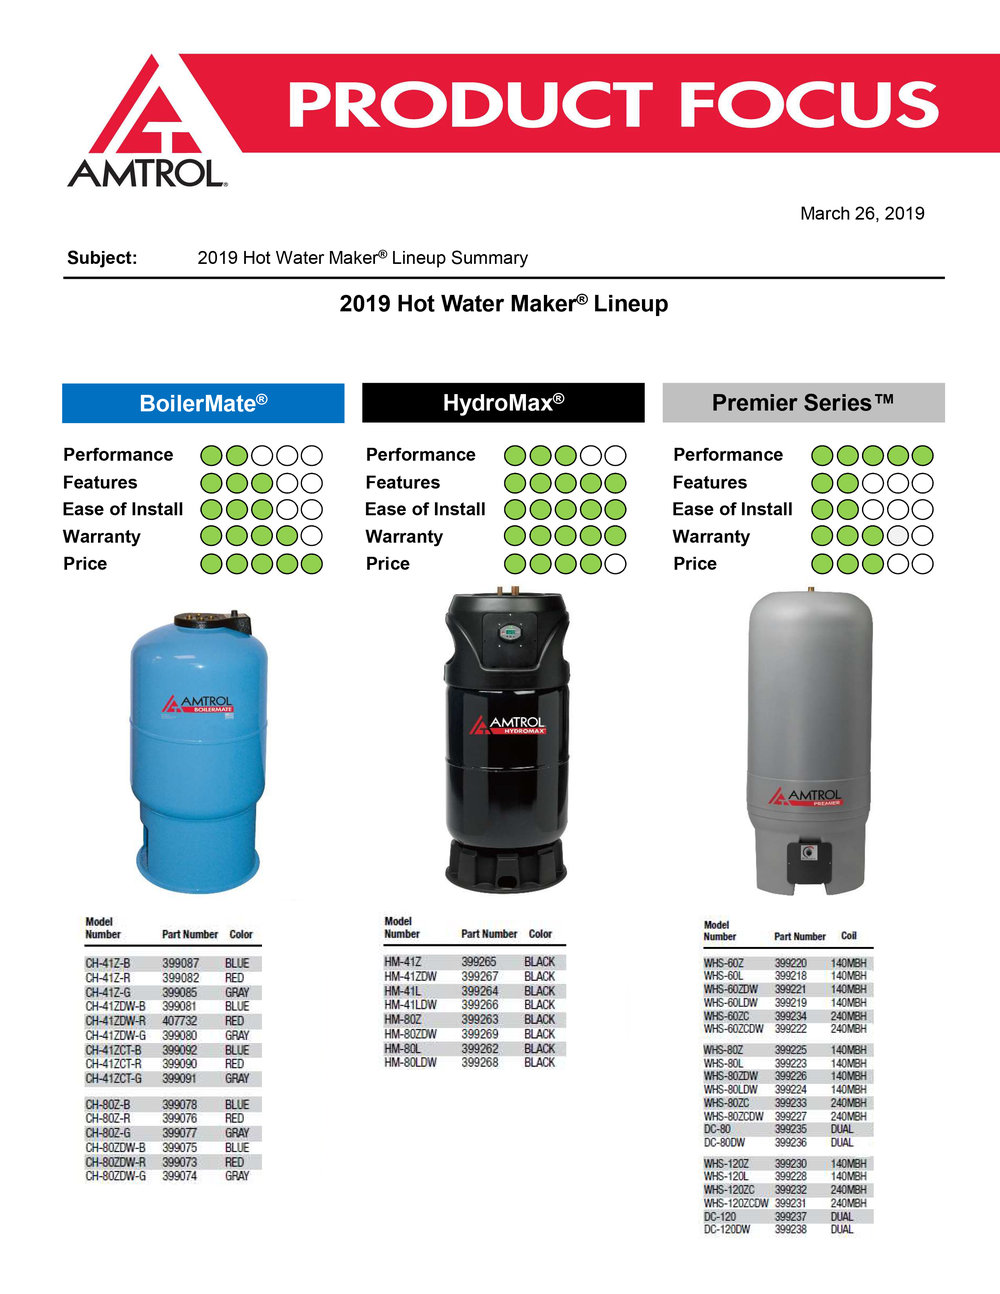 Product Focus- HWM 2019 Lineup Summary CAN 03-26-2019.jpg